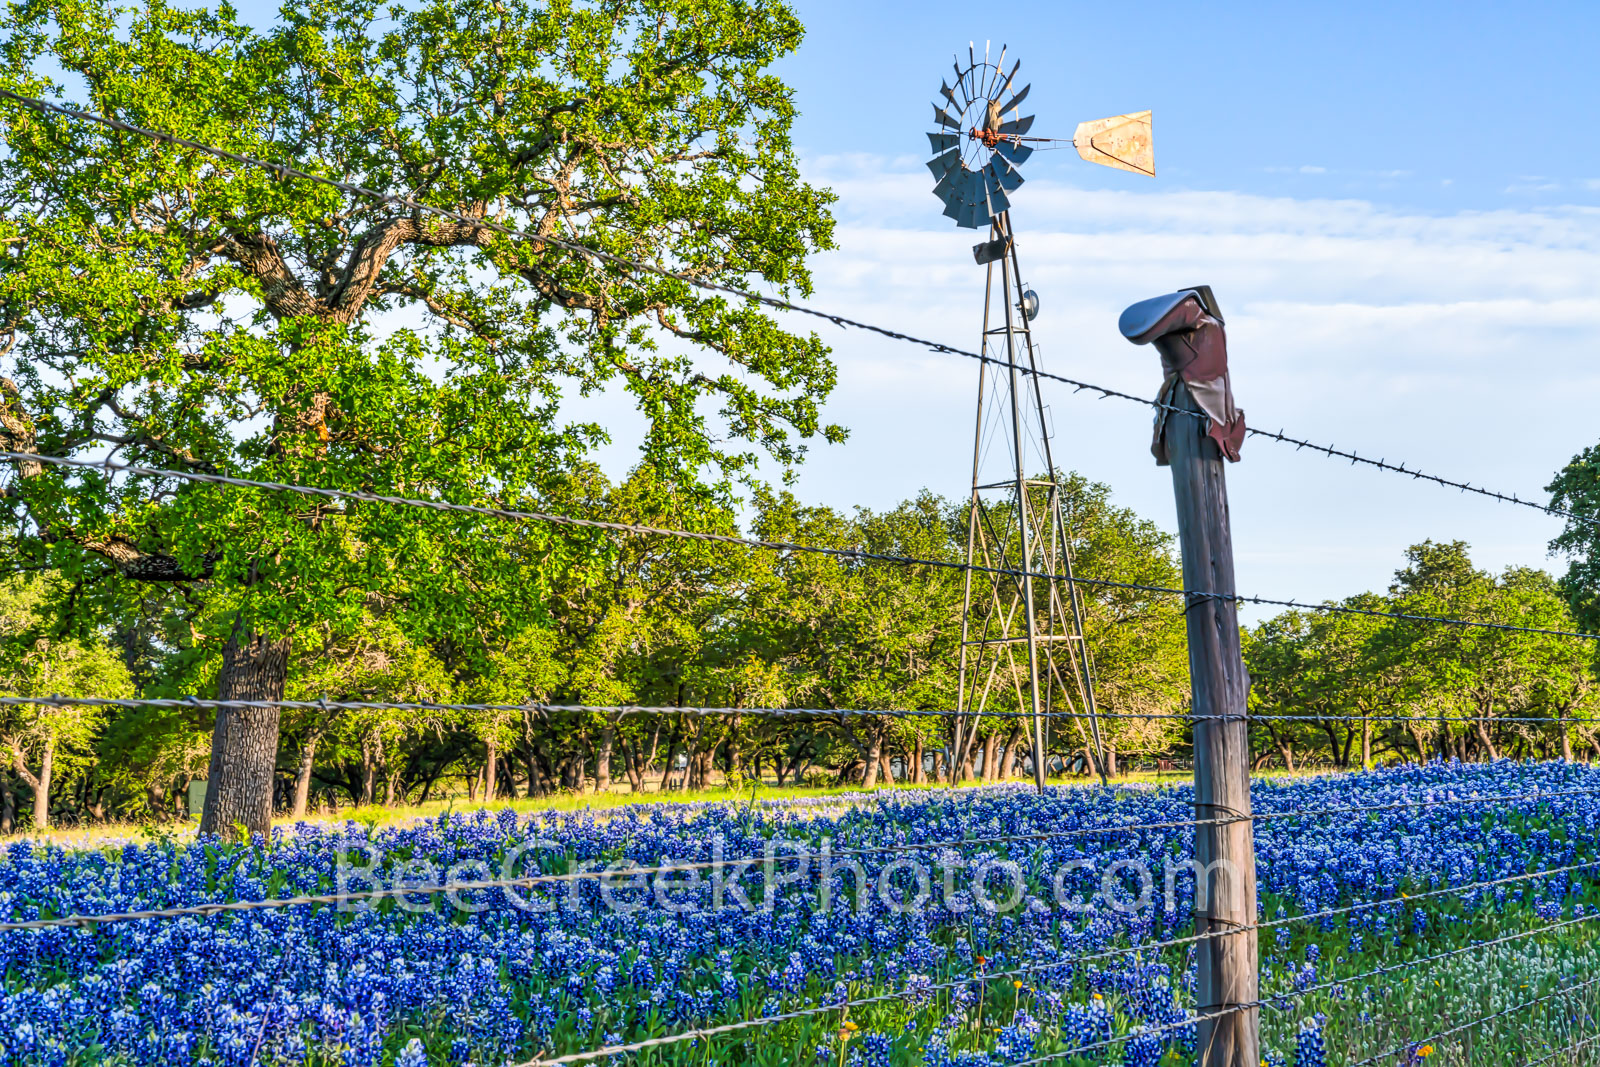 texas windmill, bluebonnets, cowboy boot, boot fence, texas bluebonnets, texas wildflowers, blue bonnets, texas scenery, texas landscape, windmills in texas, texas wildflower landscape, texas hill cou, photo